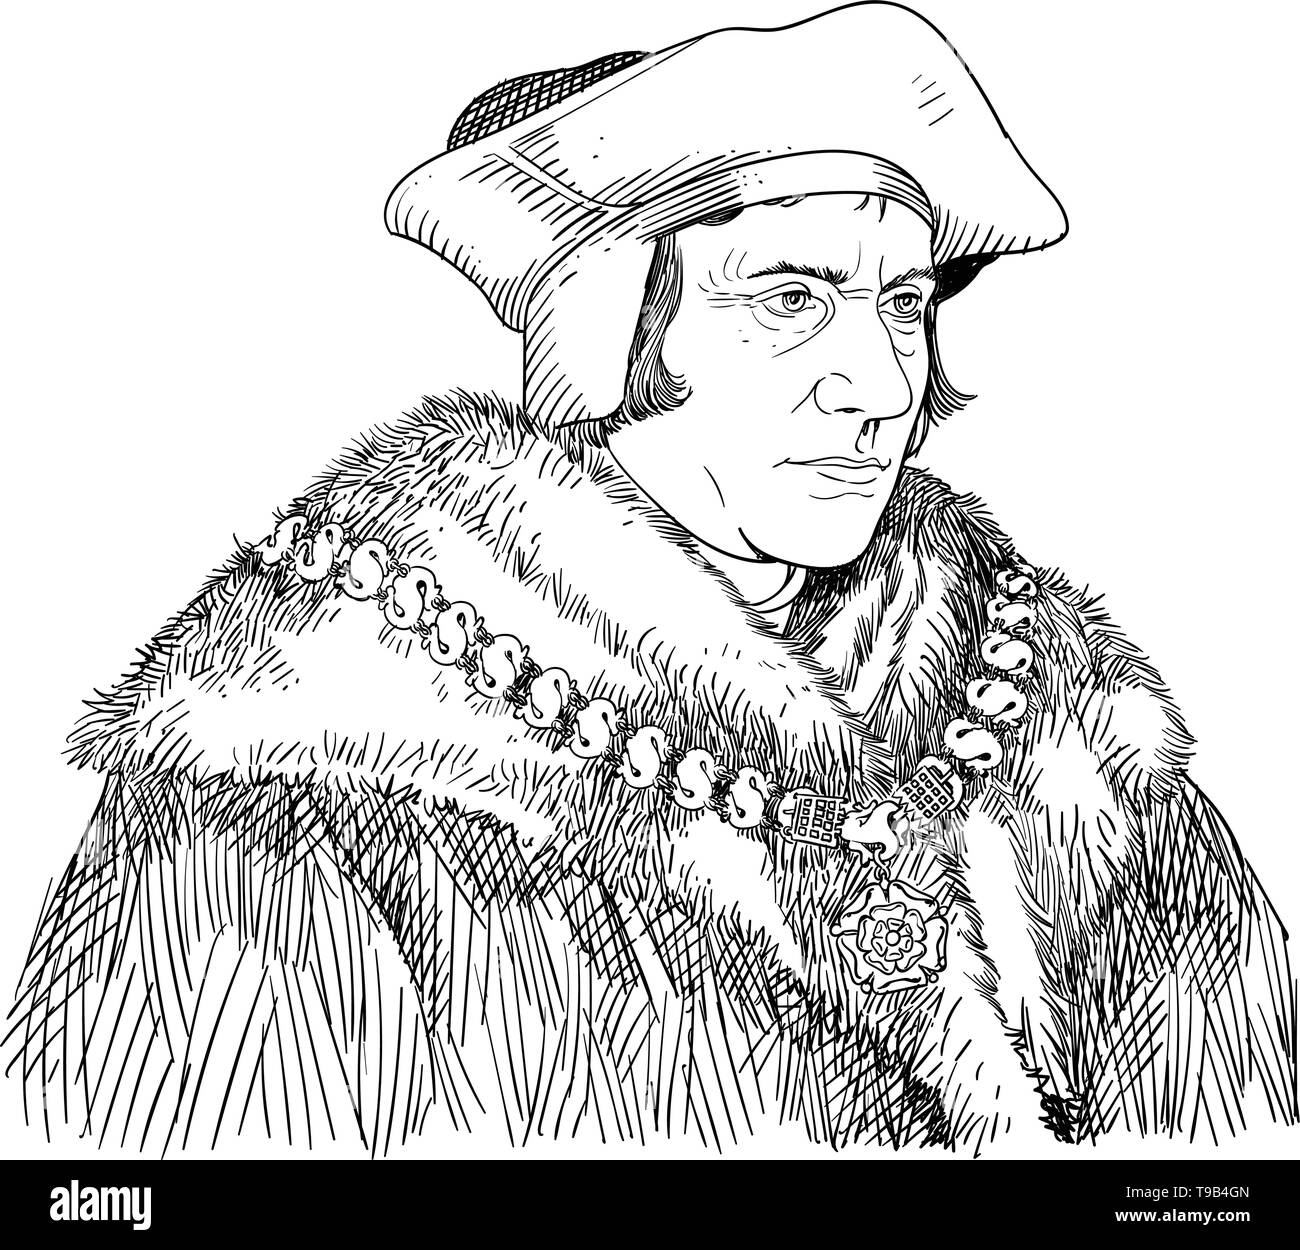 Sir Thomas More portrait in line art illustration. He was an English lawyer, social philosopher, author, statesman and noted Renaissance humanist. - Stock Image